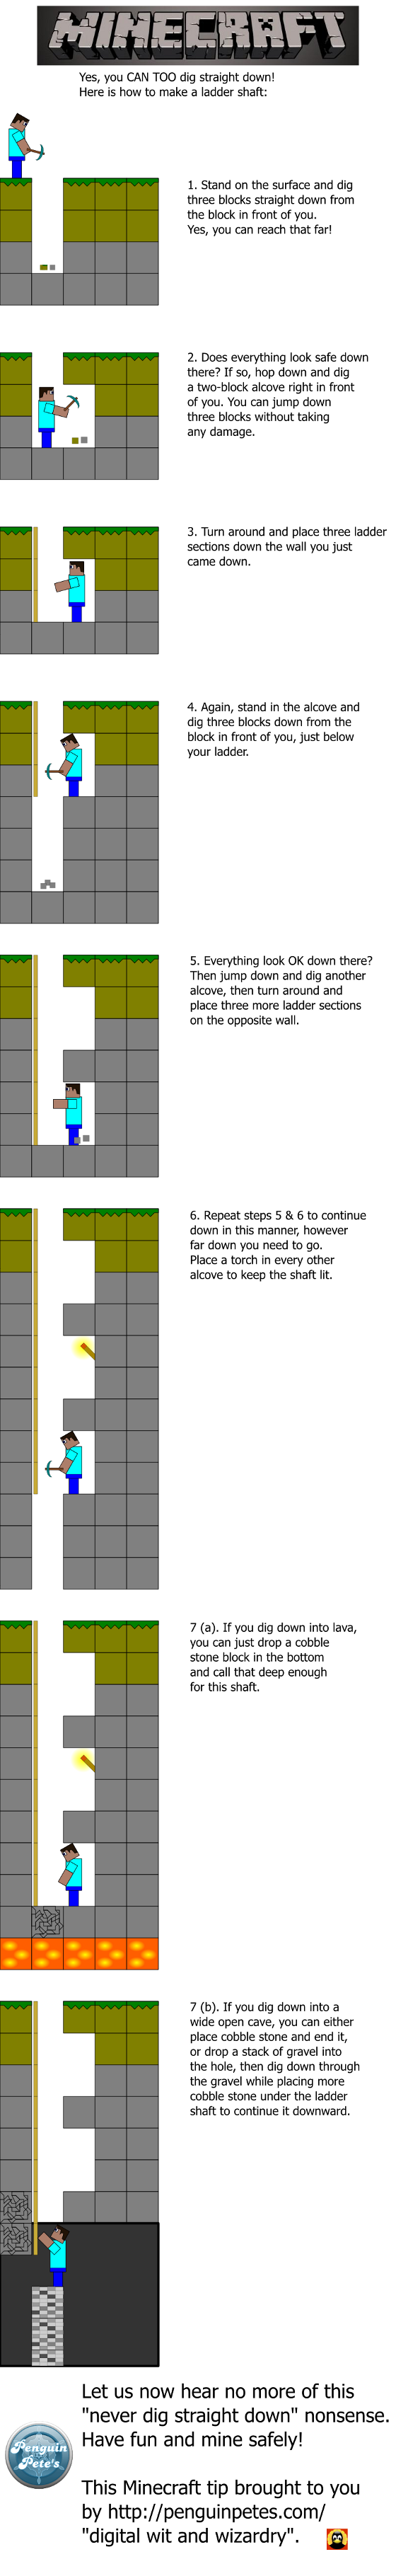 a tutorial on a technique in Minecraft